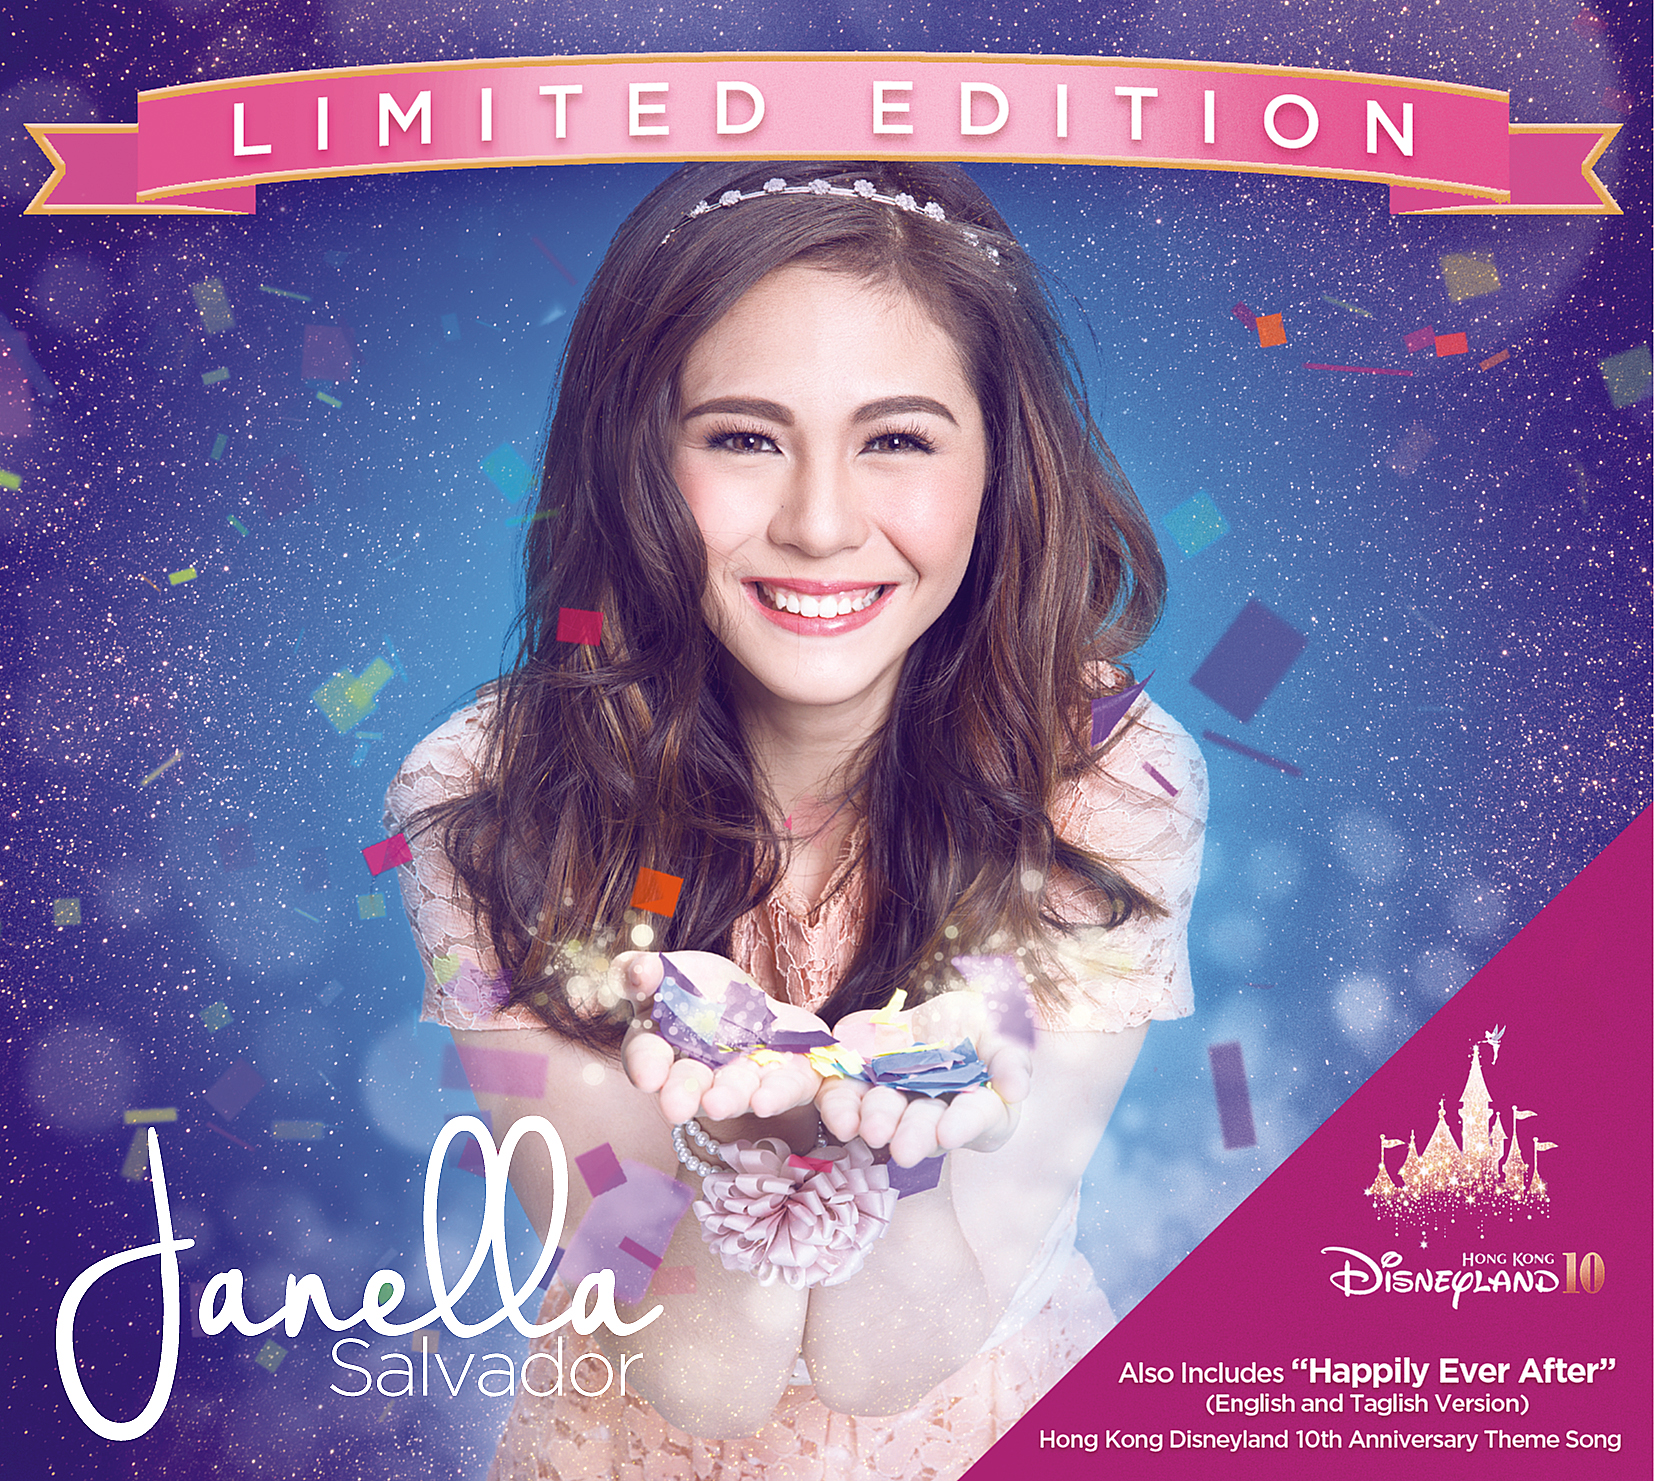 Janella's limited self-titled album features Hong Kong Disneyland 10th Anniversary  Theme Song